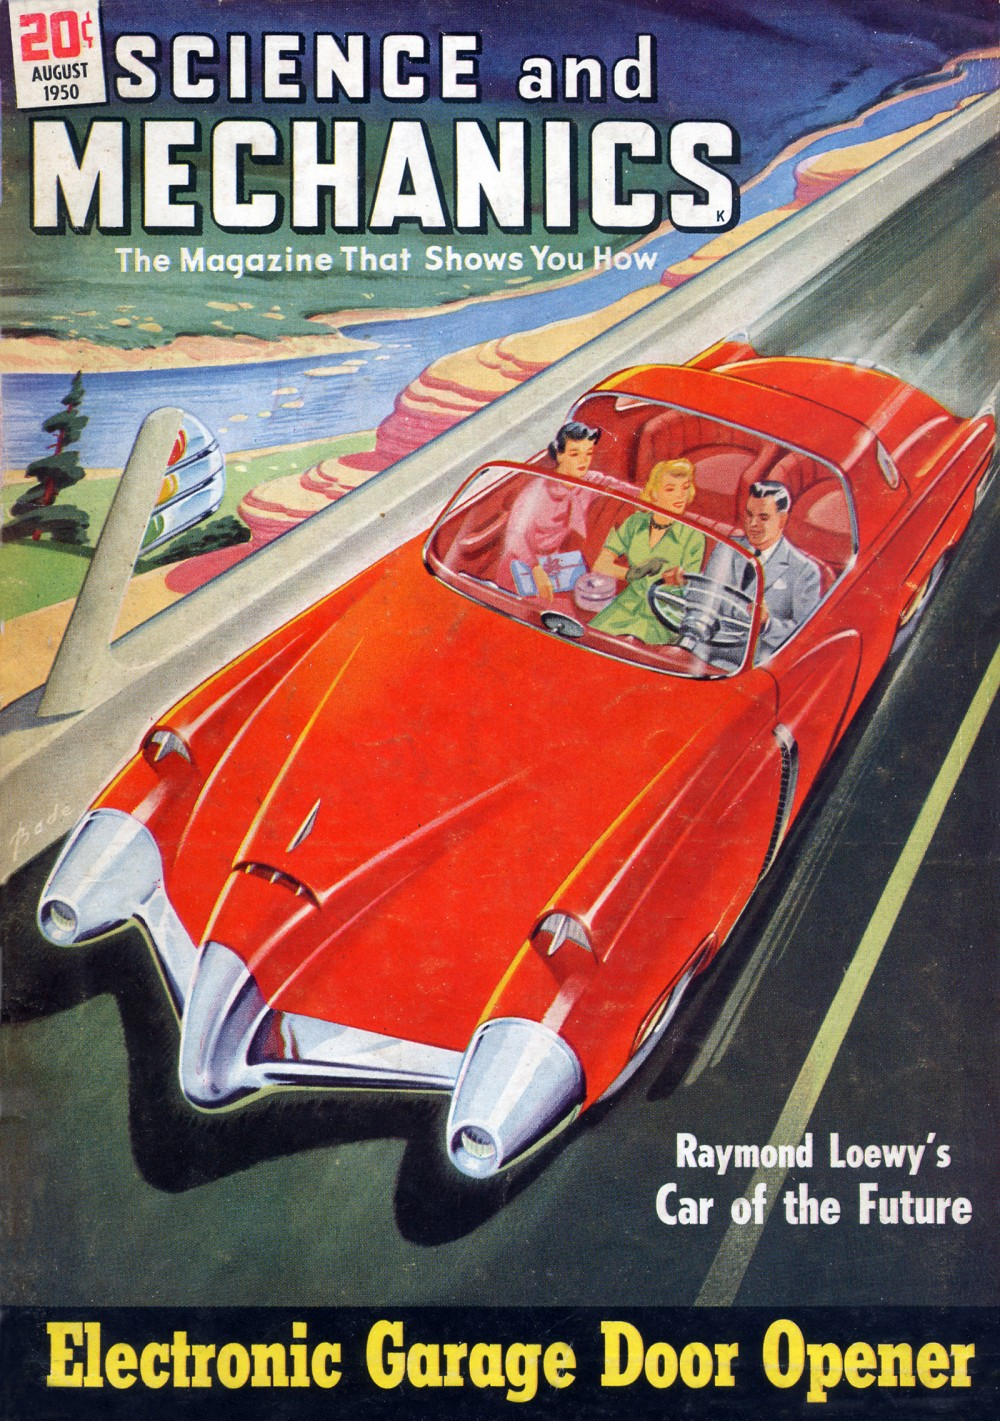 The cover of Science and Mechanics. It features a drawing of a man and two women in a sleek red convertible. The headlines are Electronic Garage Door Opener and Raymond Loewy's Car of the Future.